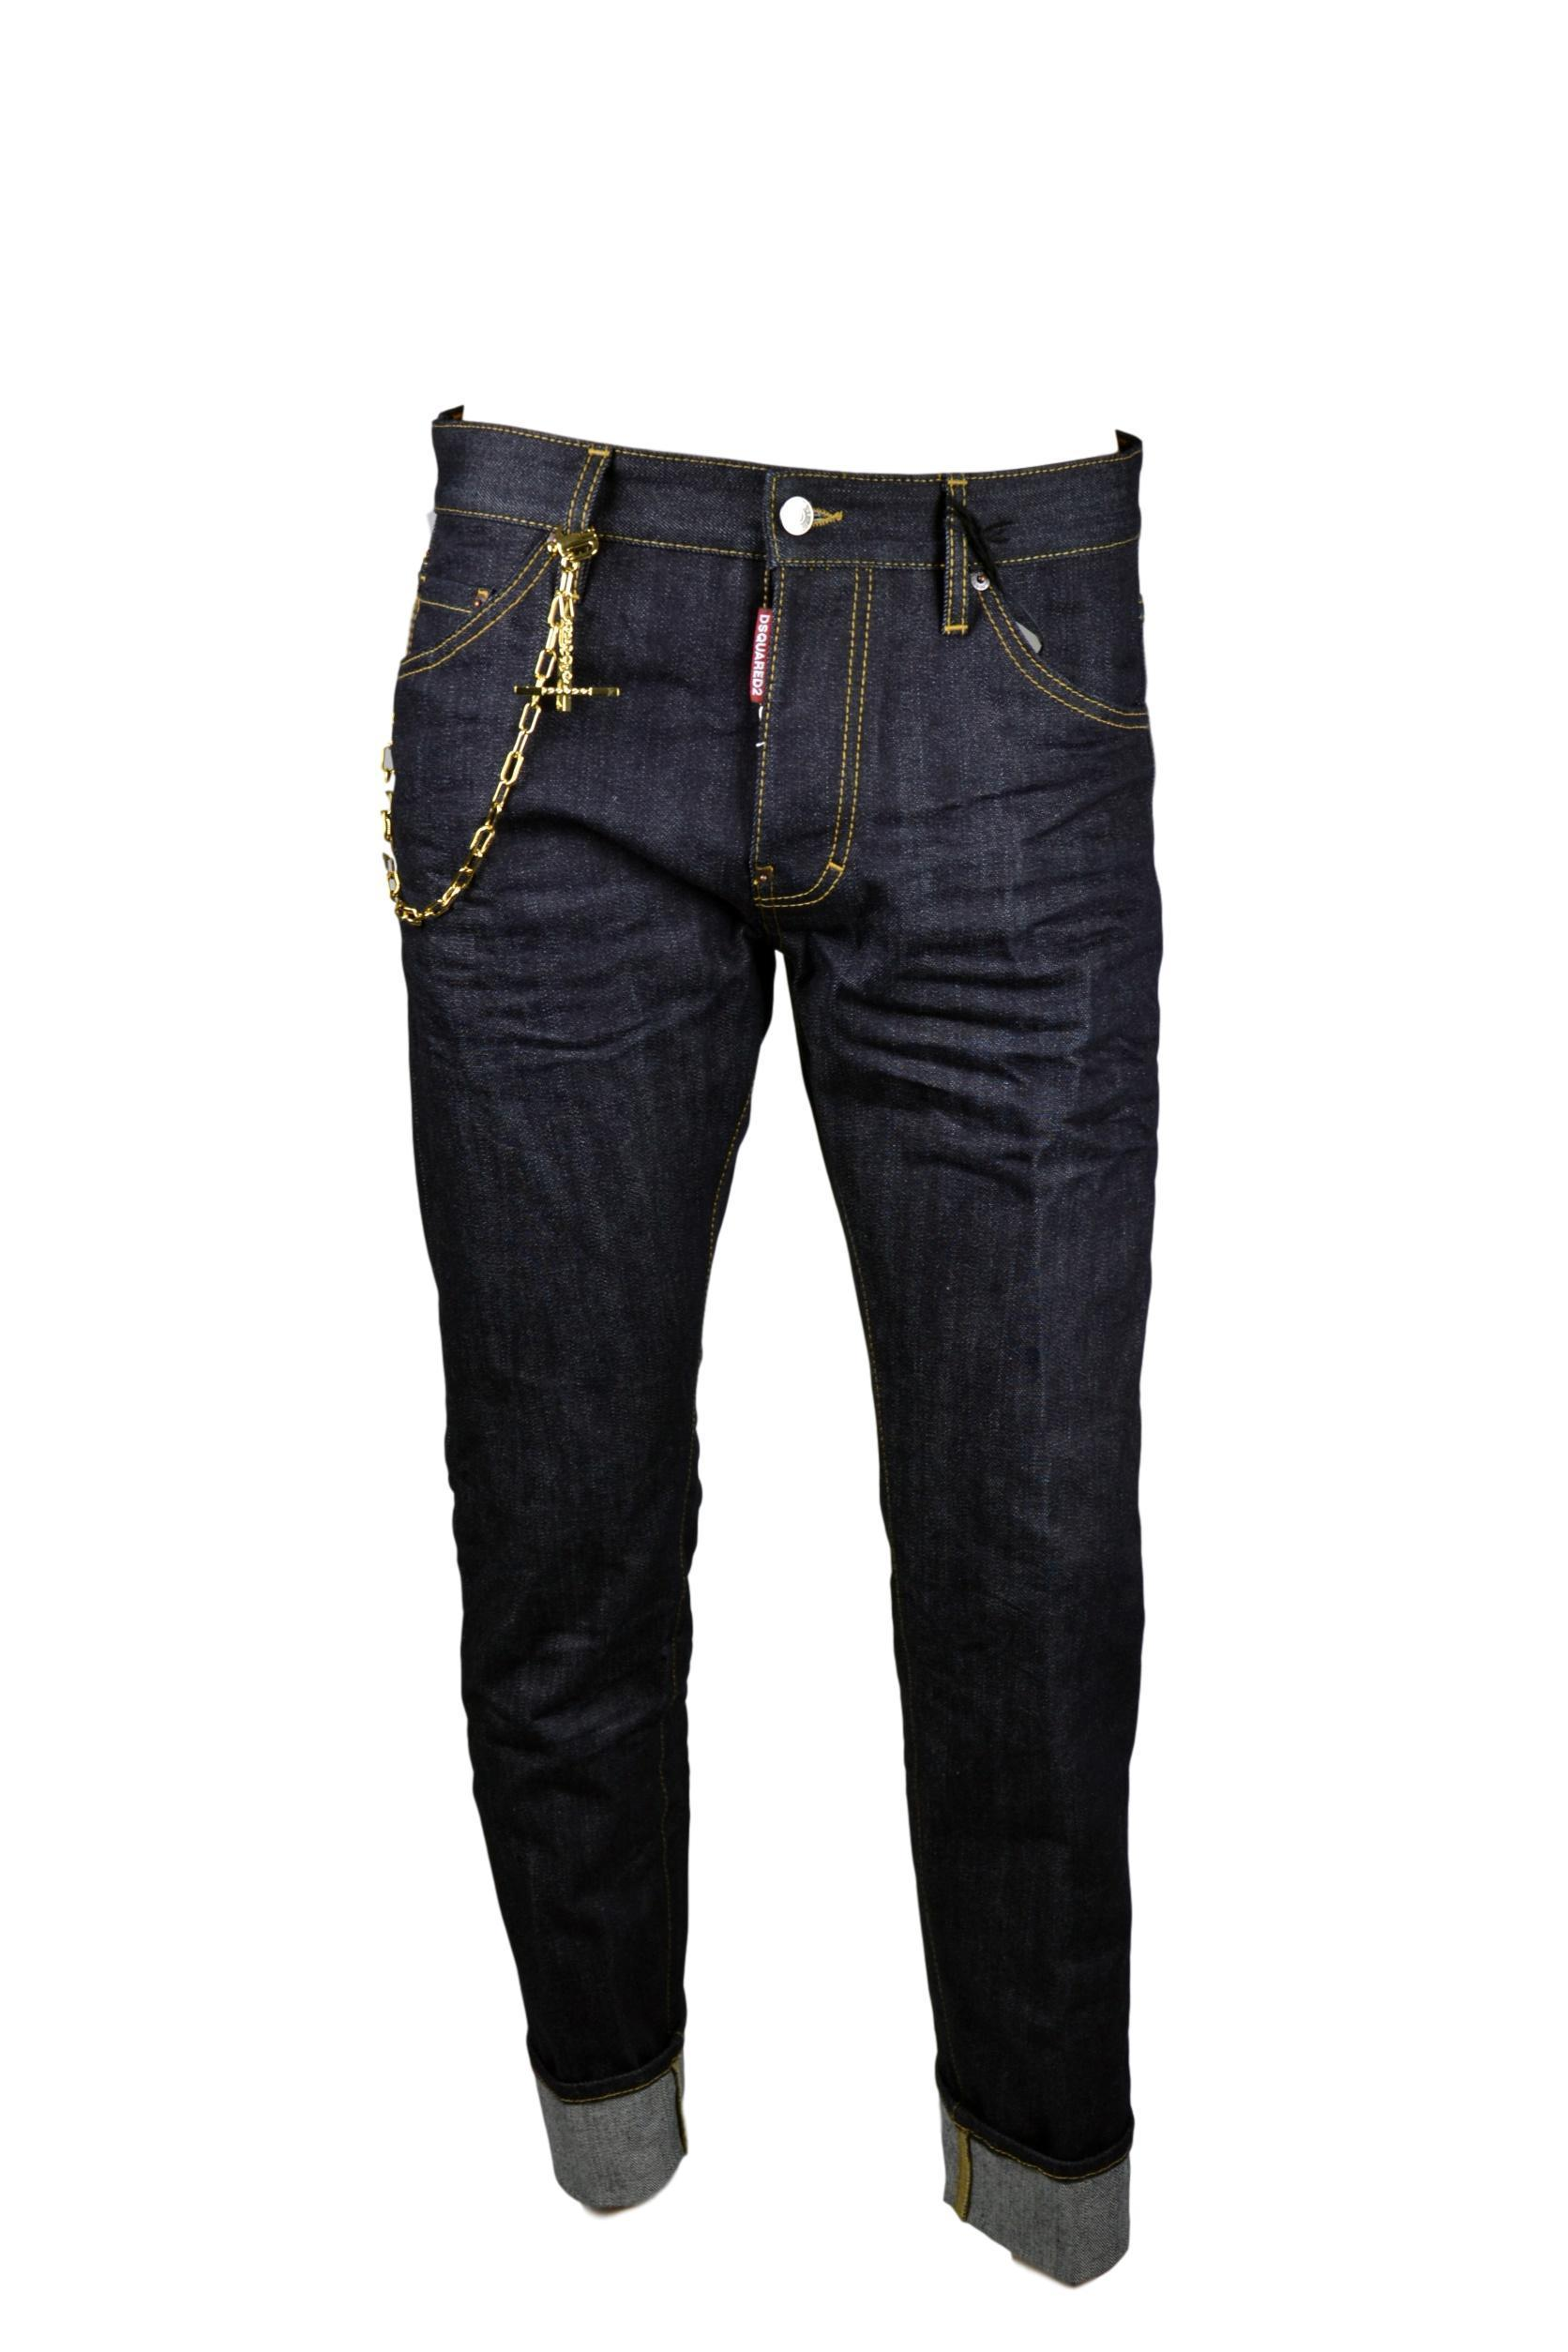 a548c9374e4e DSQUARED D2 Jeans Uomo Man Catena Oro Cool Guy Denim Scuro TG. 48 50 (34 36)